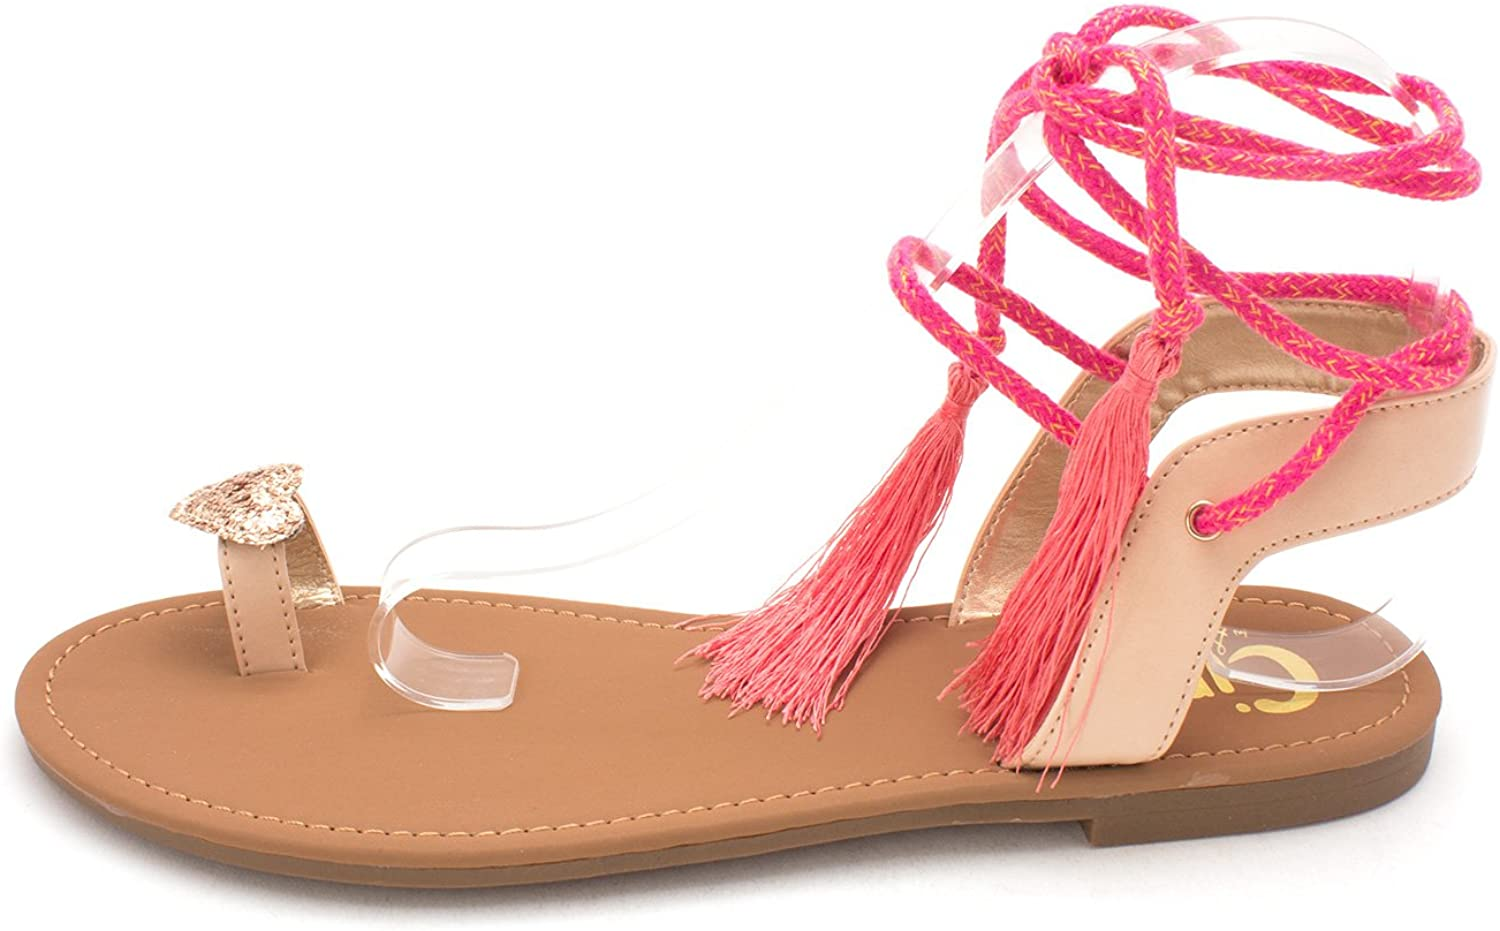 Circus by Sam Edelman Womens Binx-1 Open Toe Casual, Natural Naked, Size 9.5